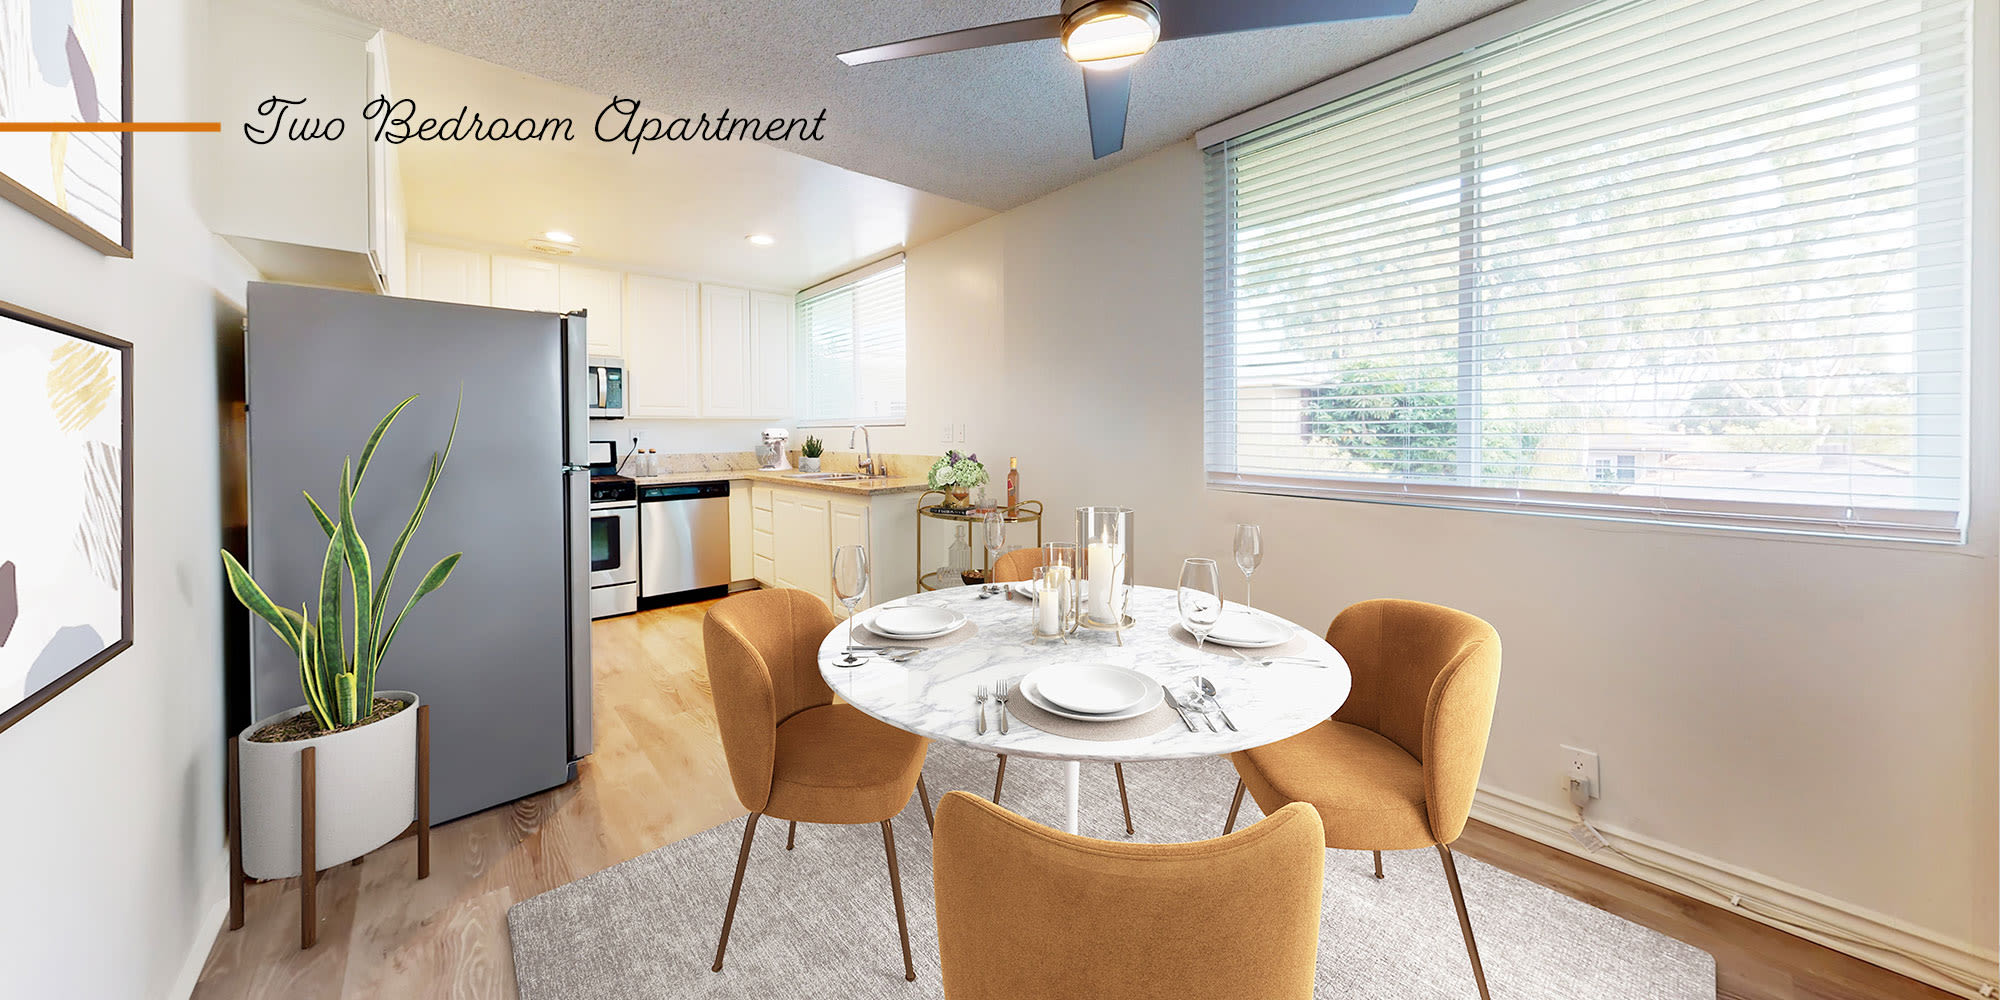 Dining room and kitchen in a two-bedroom apartment at Sunset Barrington Gardens in Los Angeles, California